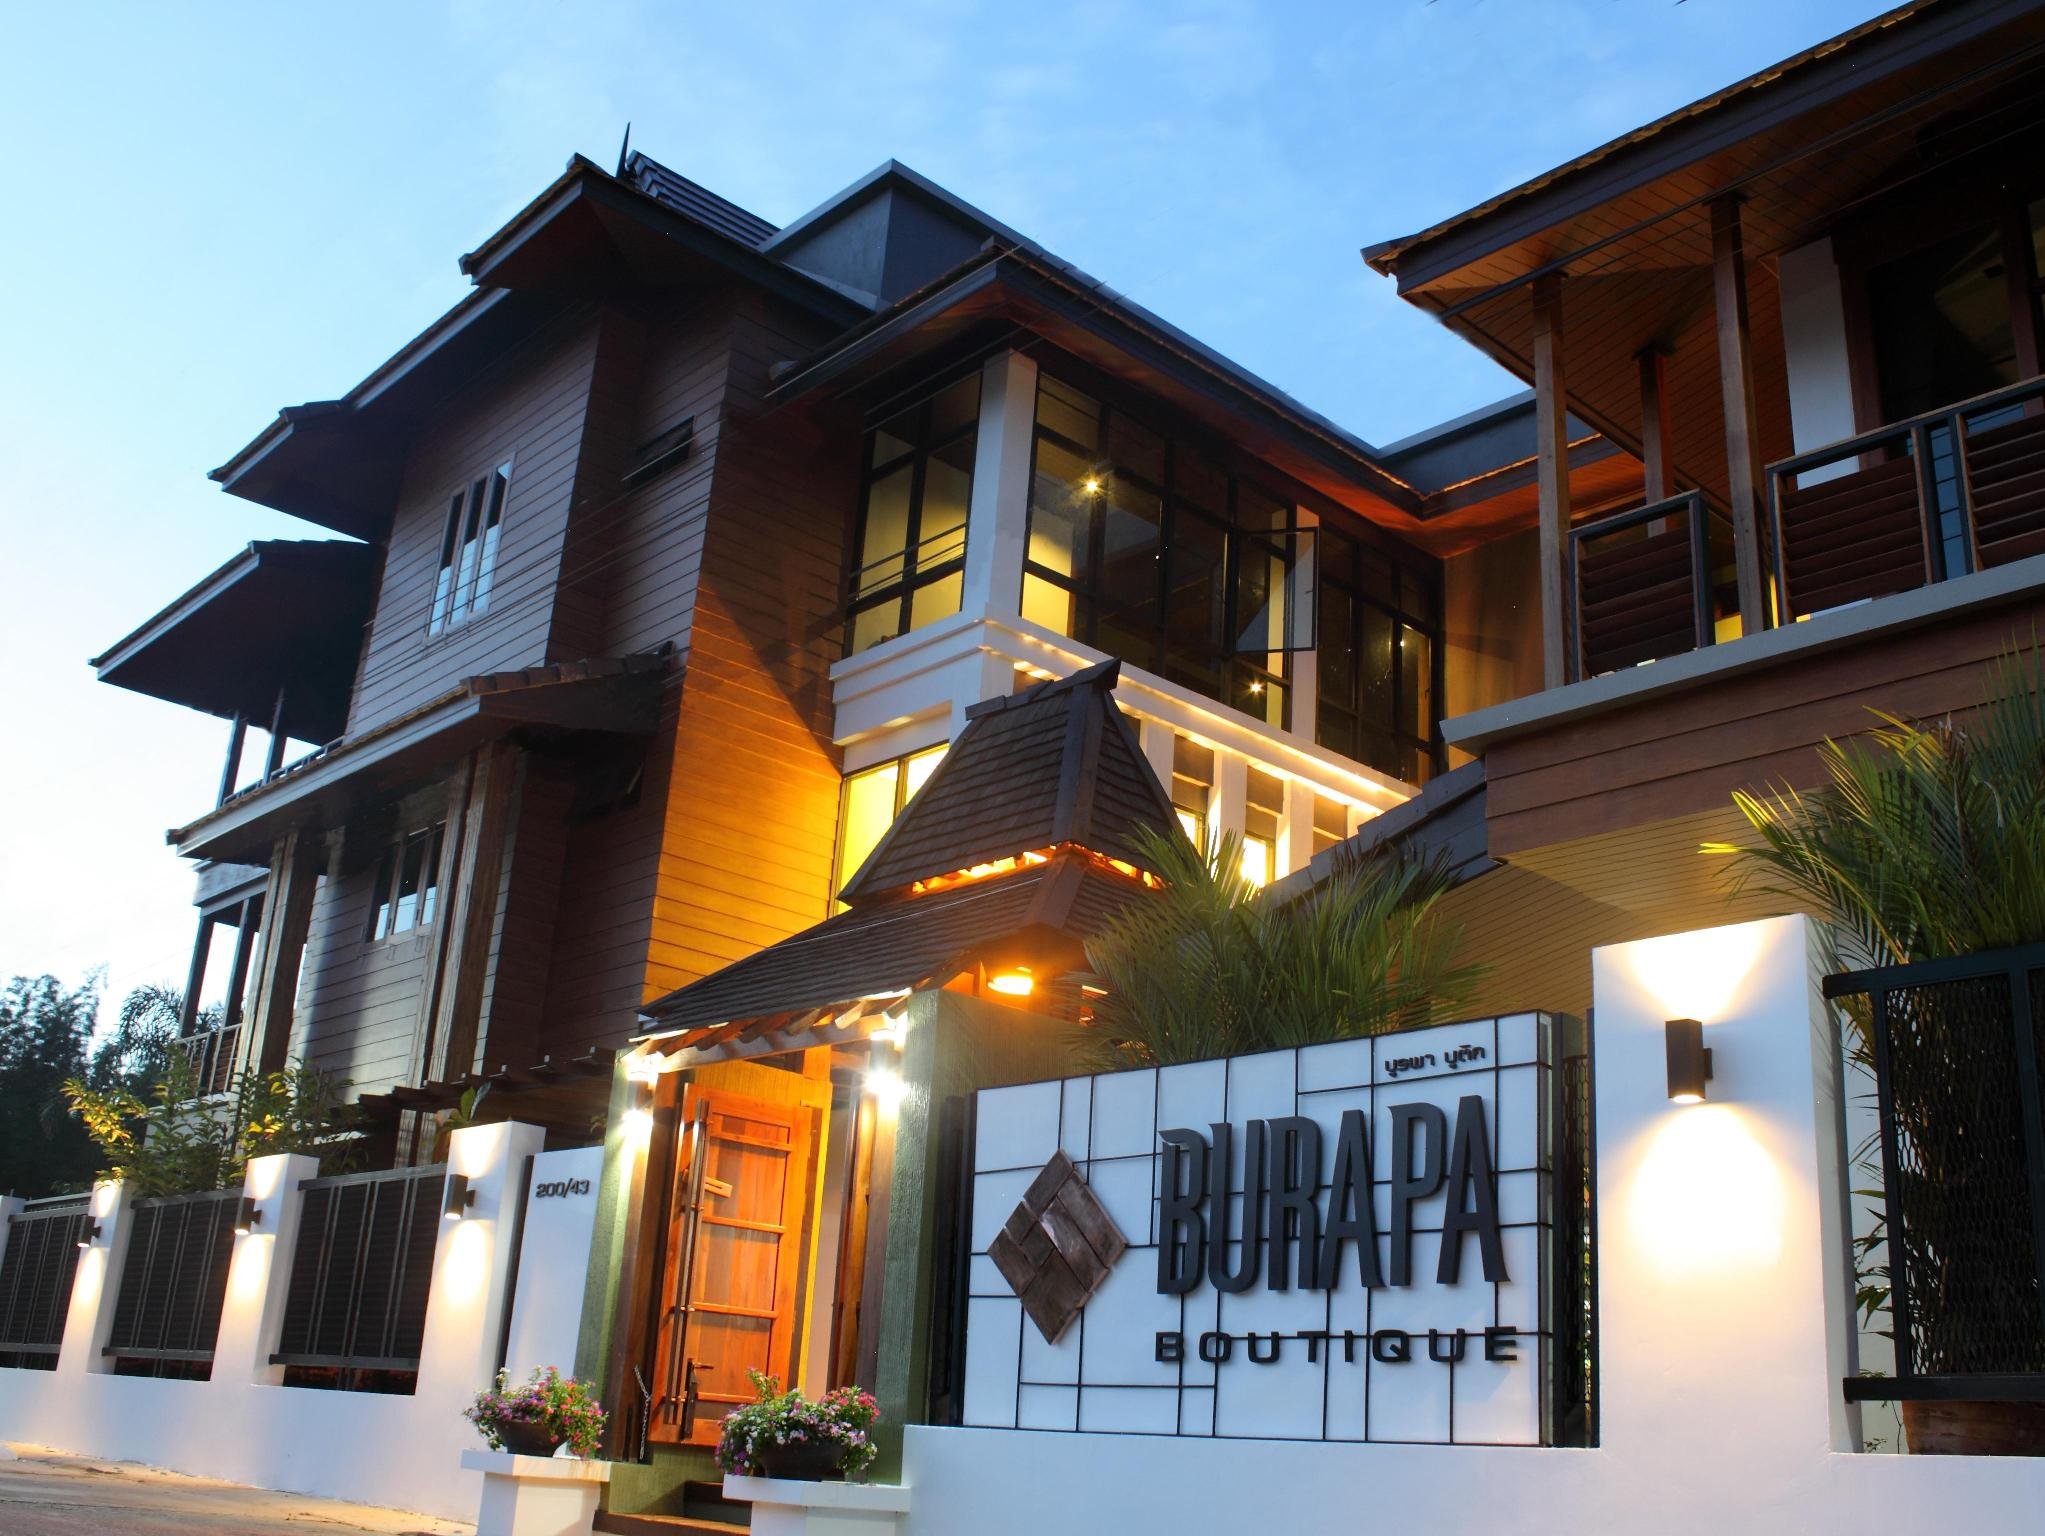 Burapa Boutique Hotel